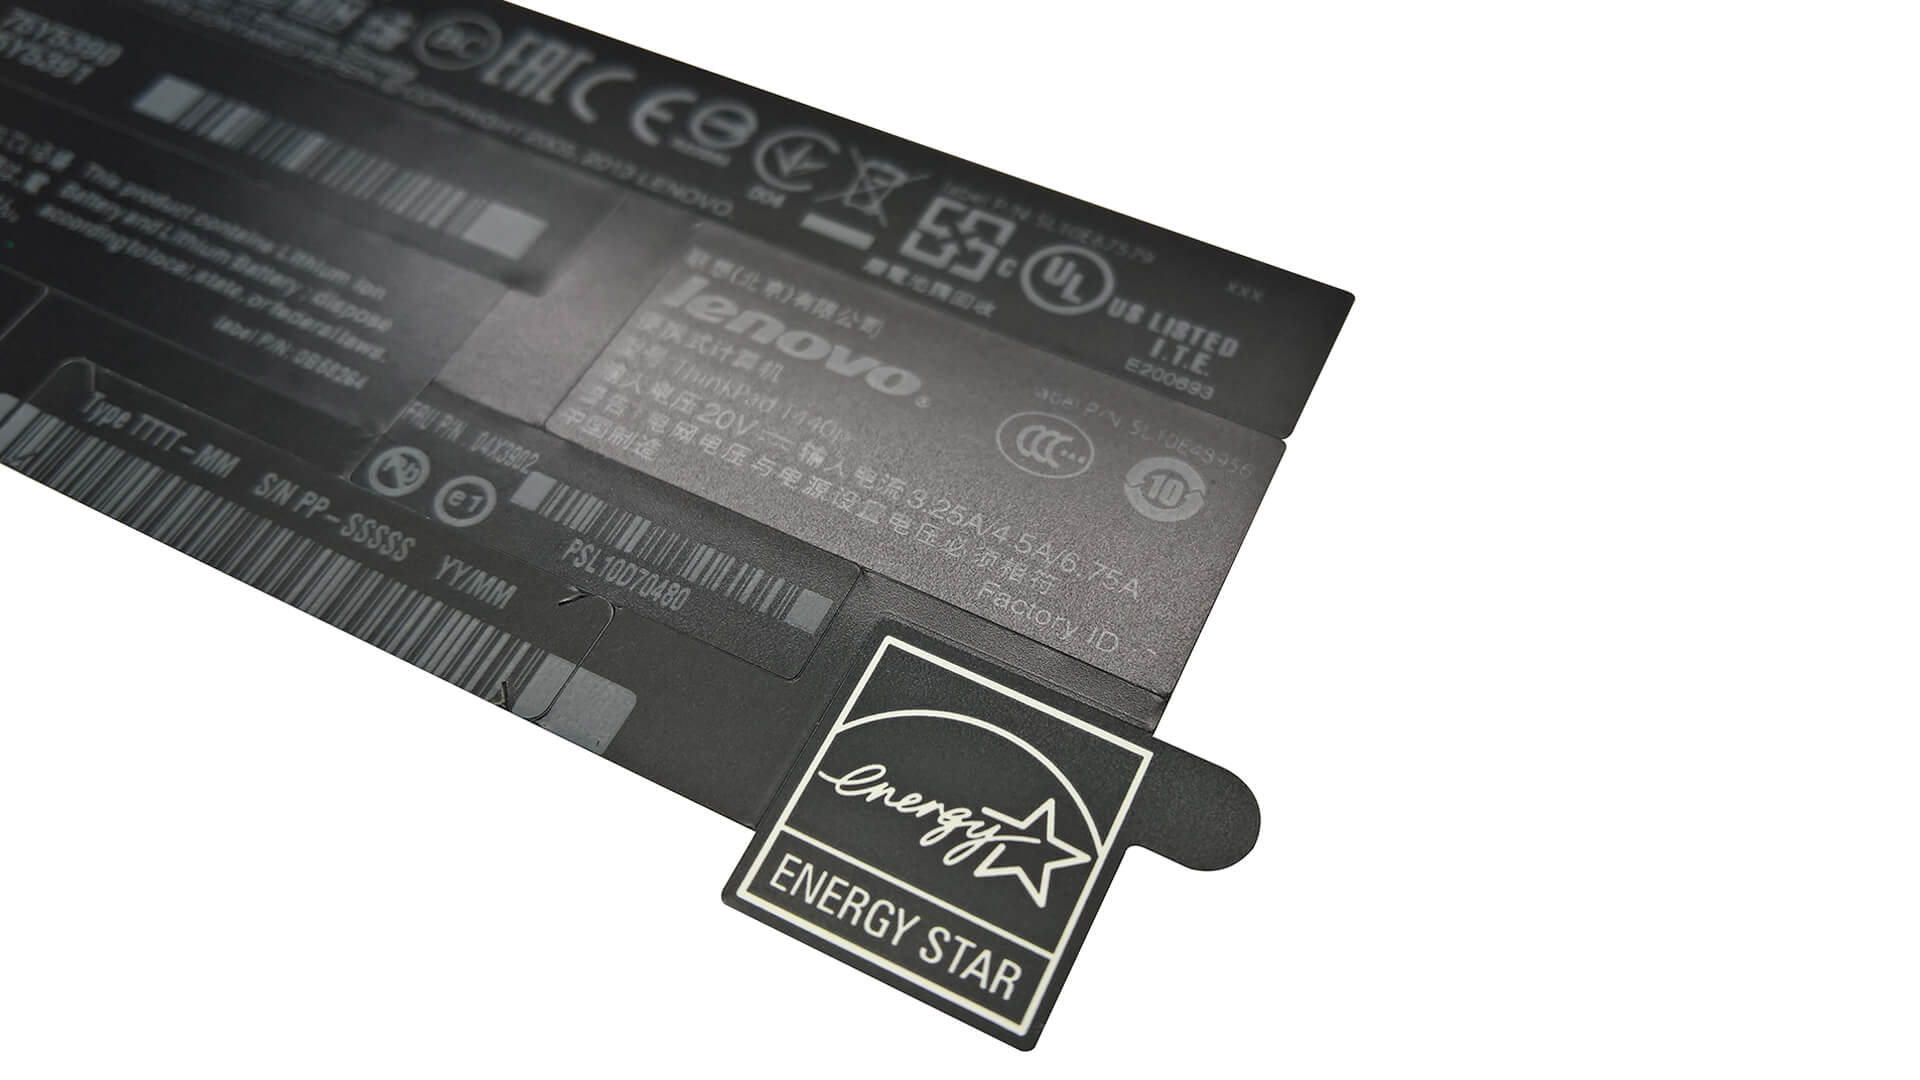 Thermal Transfer Compset Labels for Laptop Chassis & Components